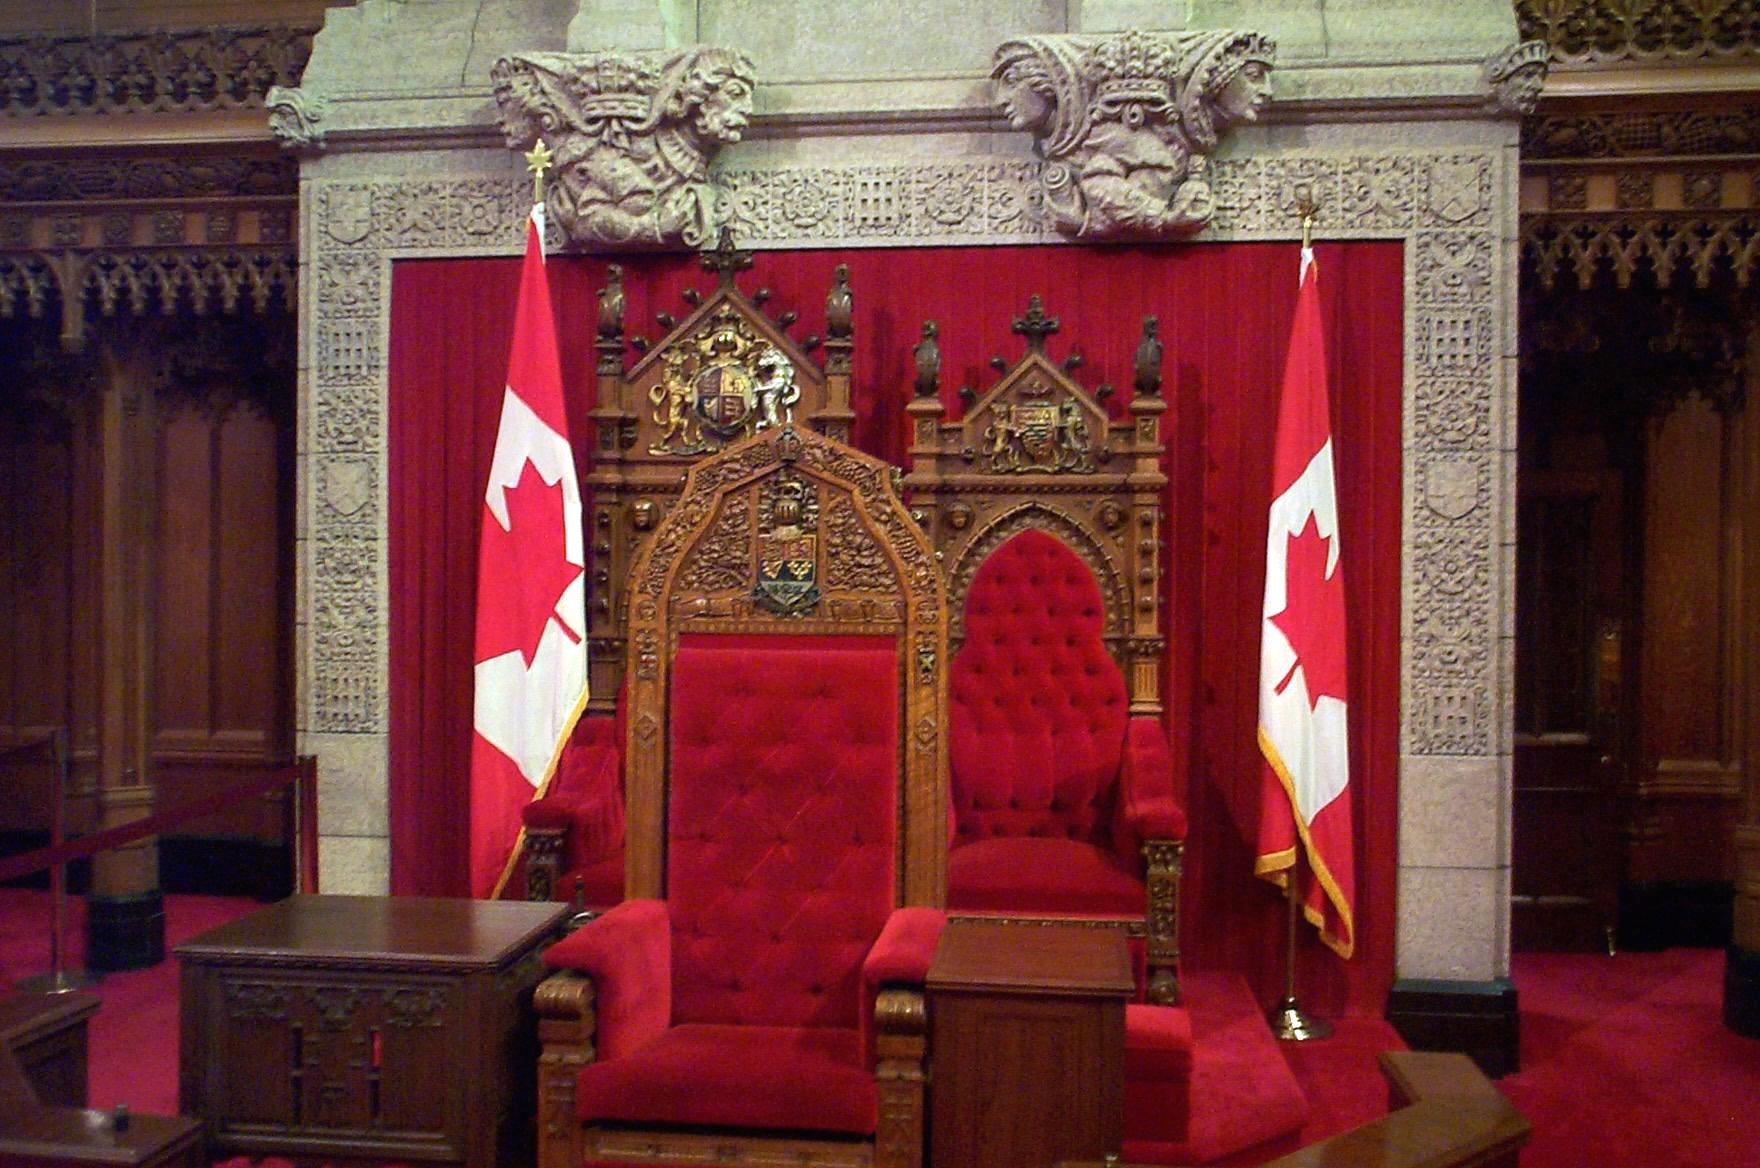 The throne and chair in the background are used by The Queen and her consort, or the Governor General and his or her spouse, respectively, during the opening of Parliament. The Speaker of the Senate employs the chair in front.